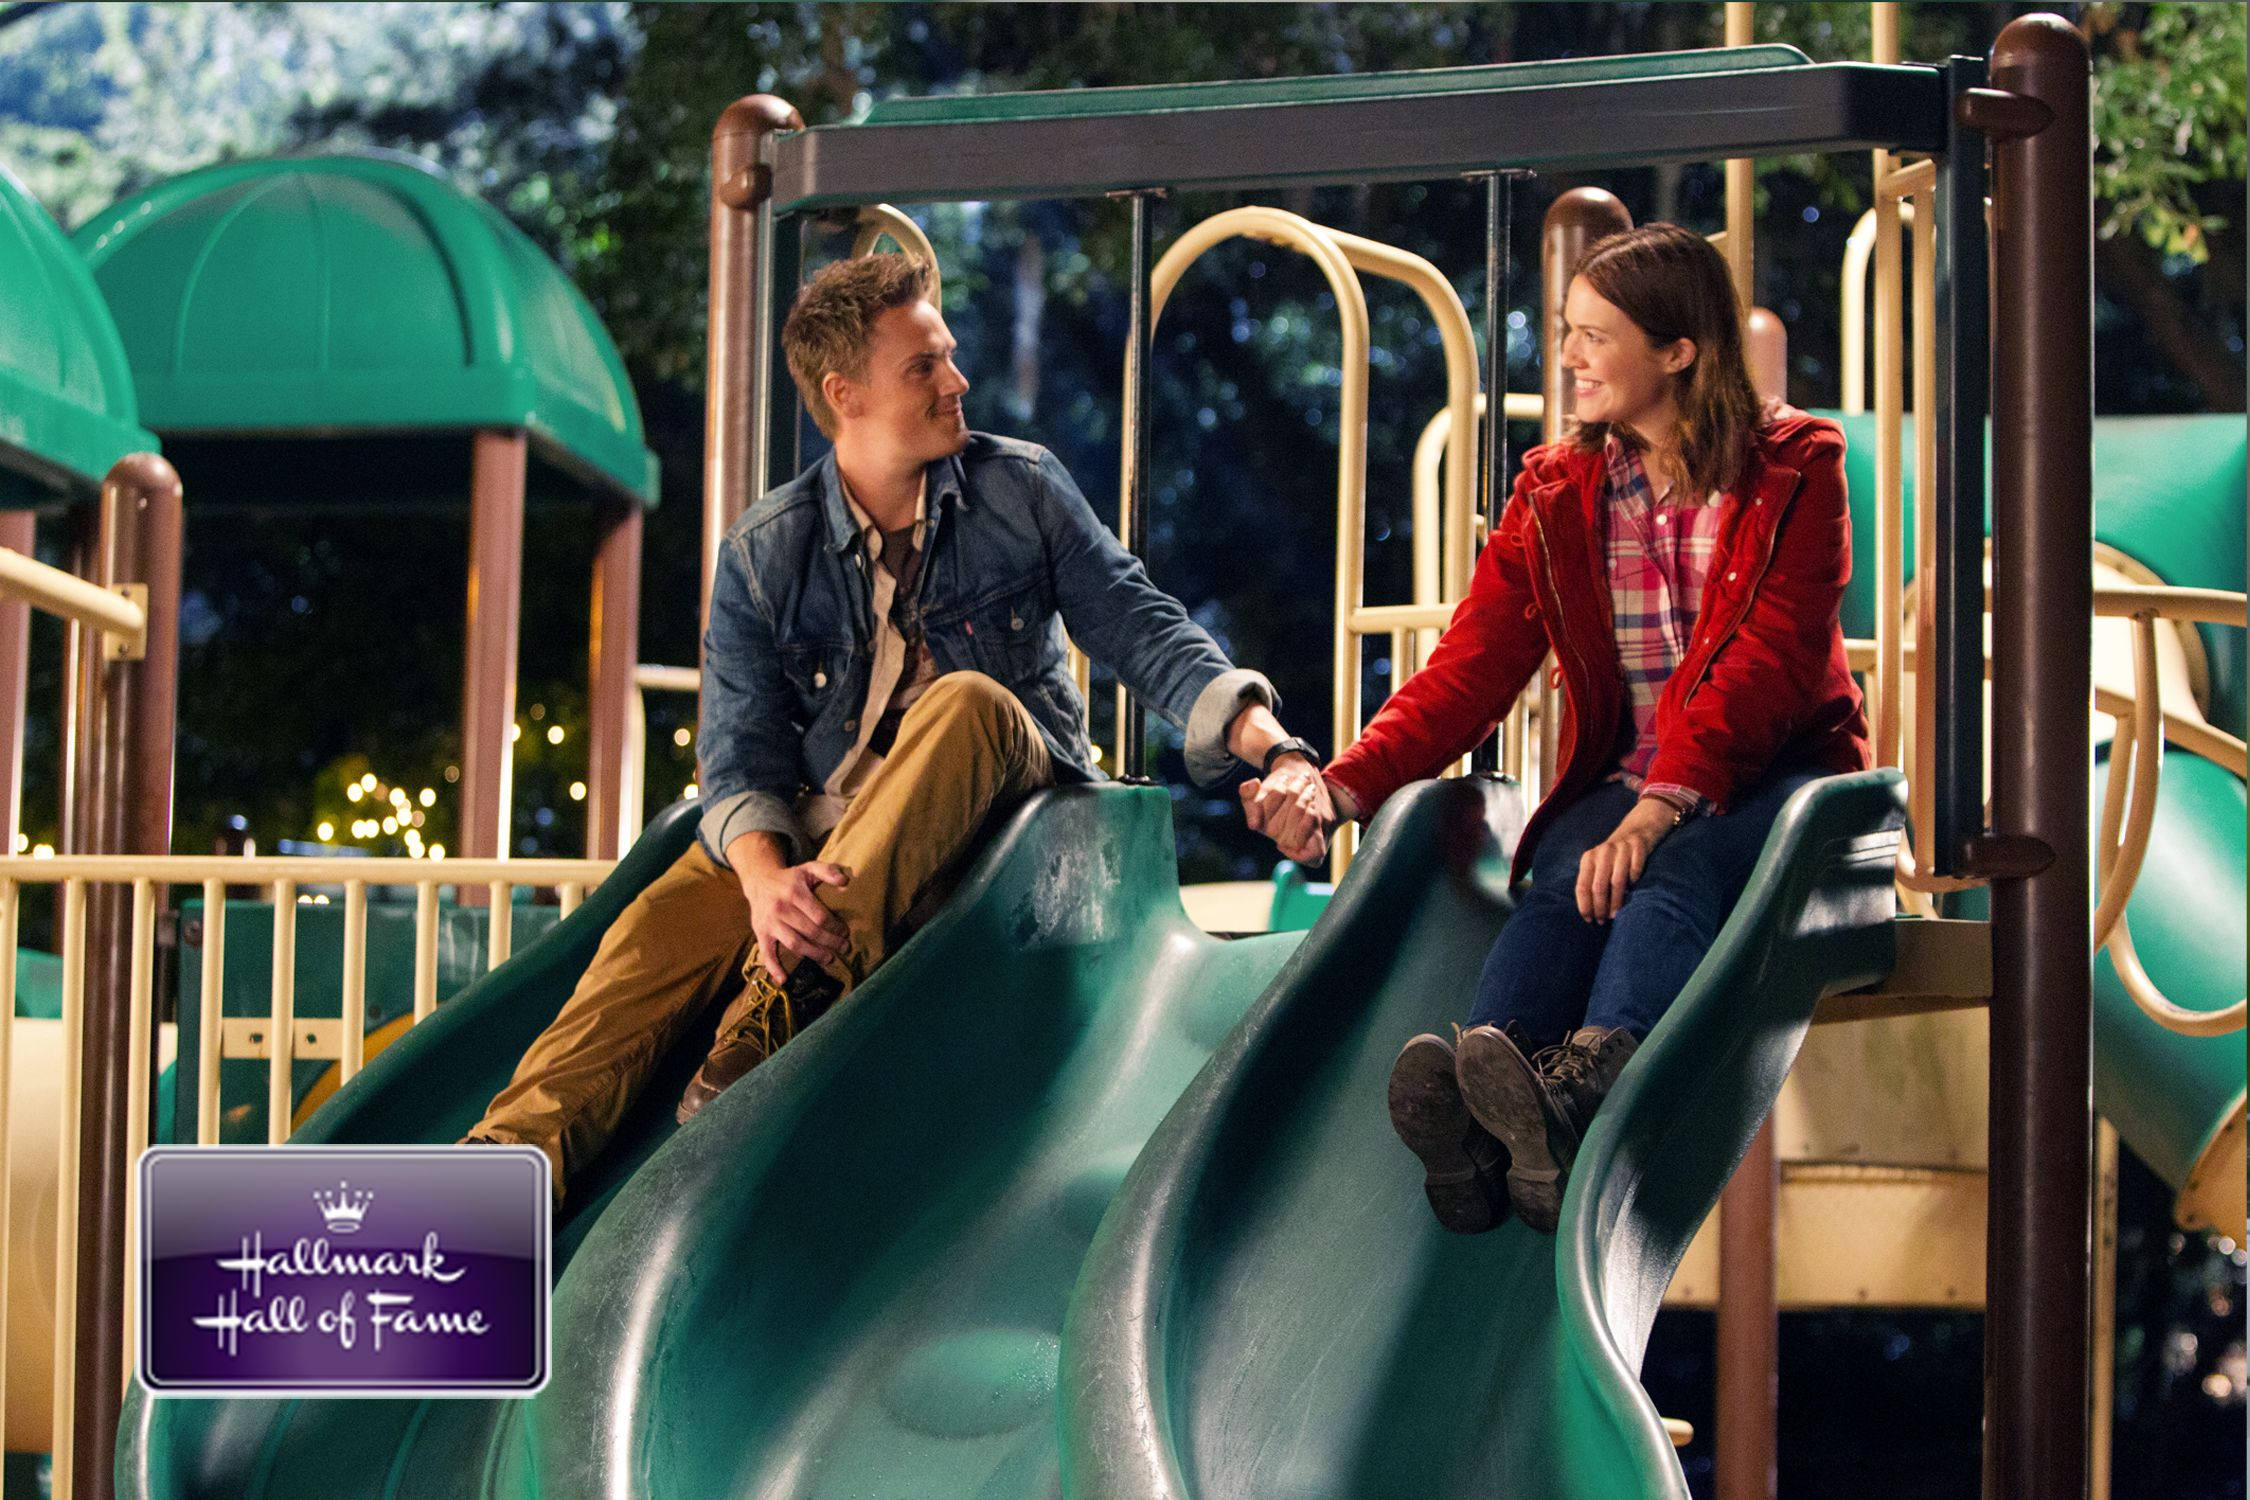 Christmas In Conway.Hallmark Hall Of Fame S Christmas In Conway Riley Smith And